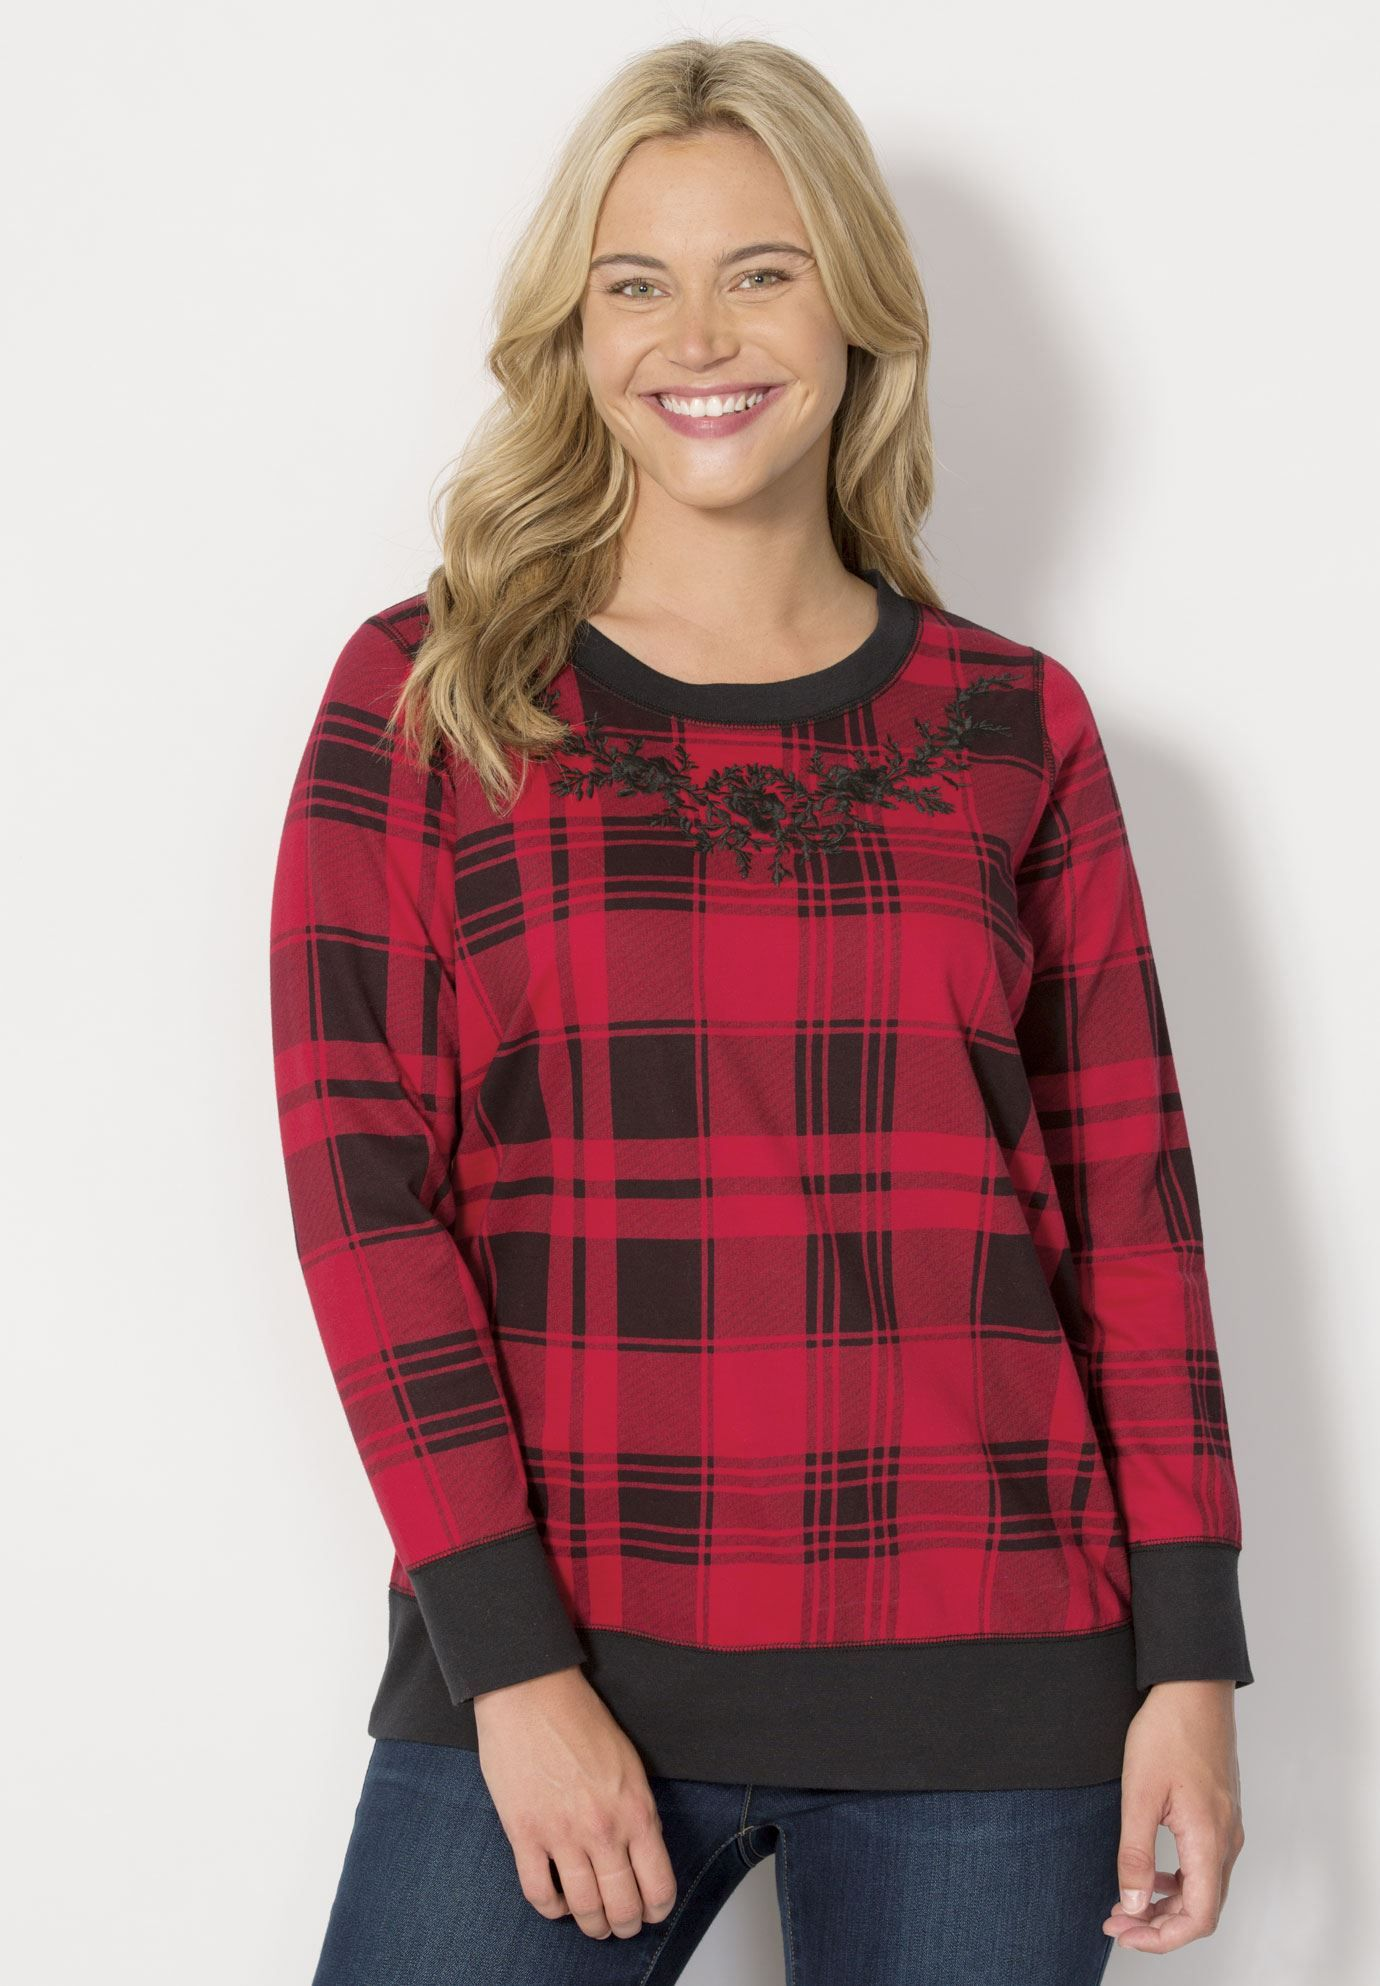 Your favorite relaxed plus size sweatshirt in our ontrend buffalo